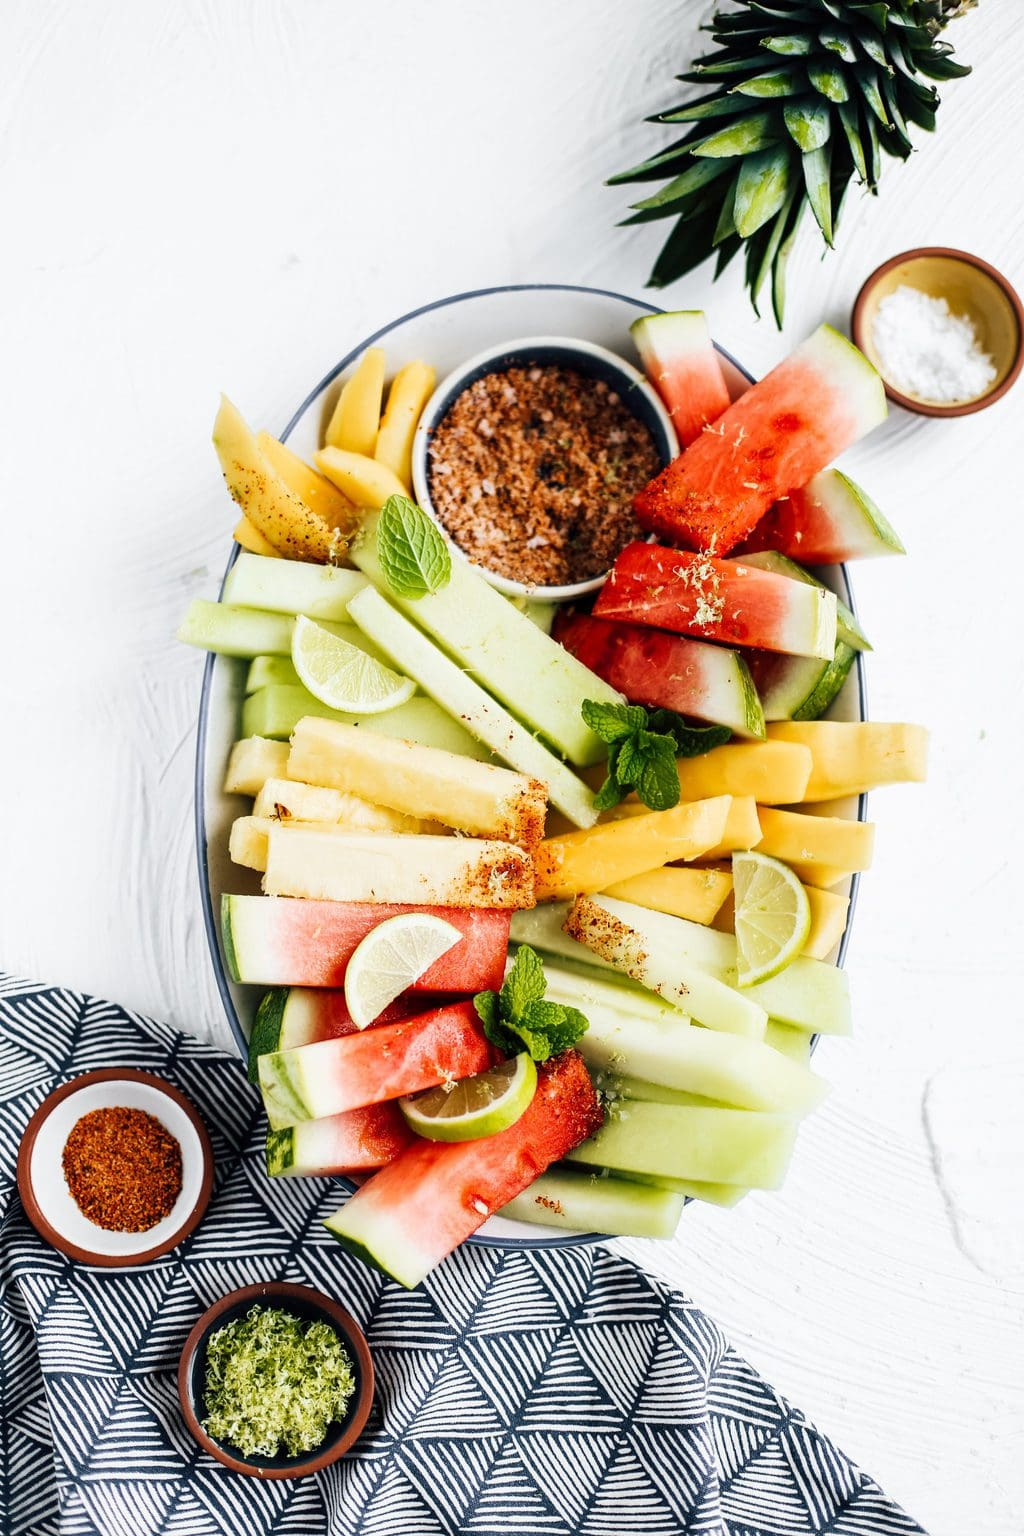 Honeydew, watermelon, pineapple and mango spears on an oblong platter with a bowl of chili lime seasoning.